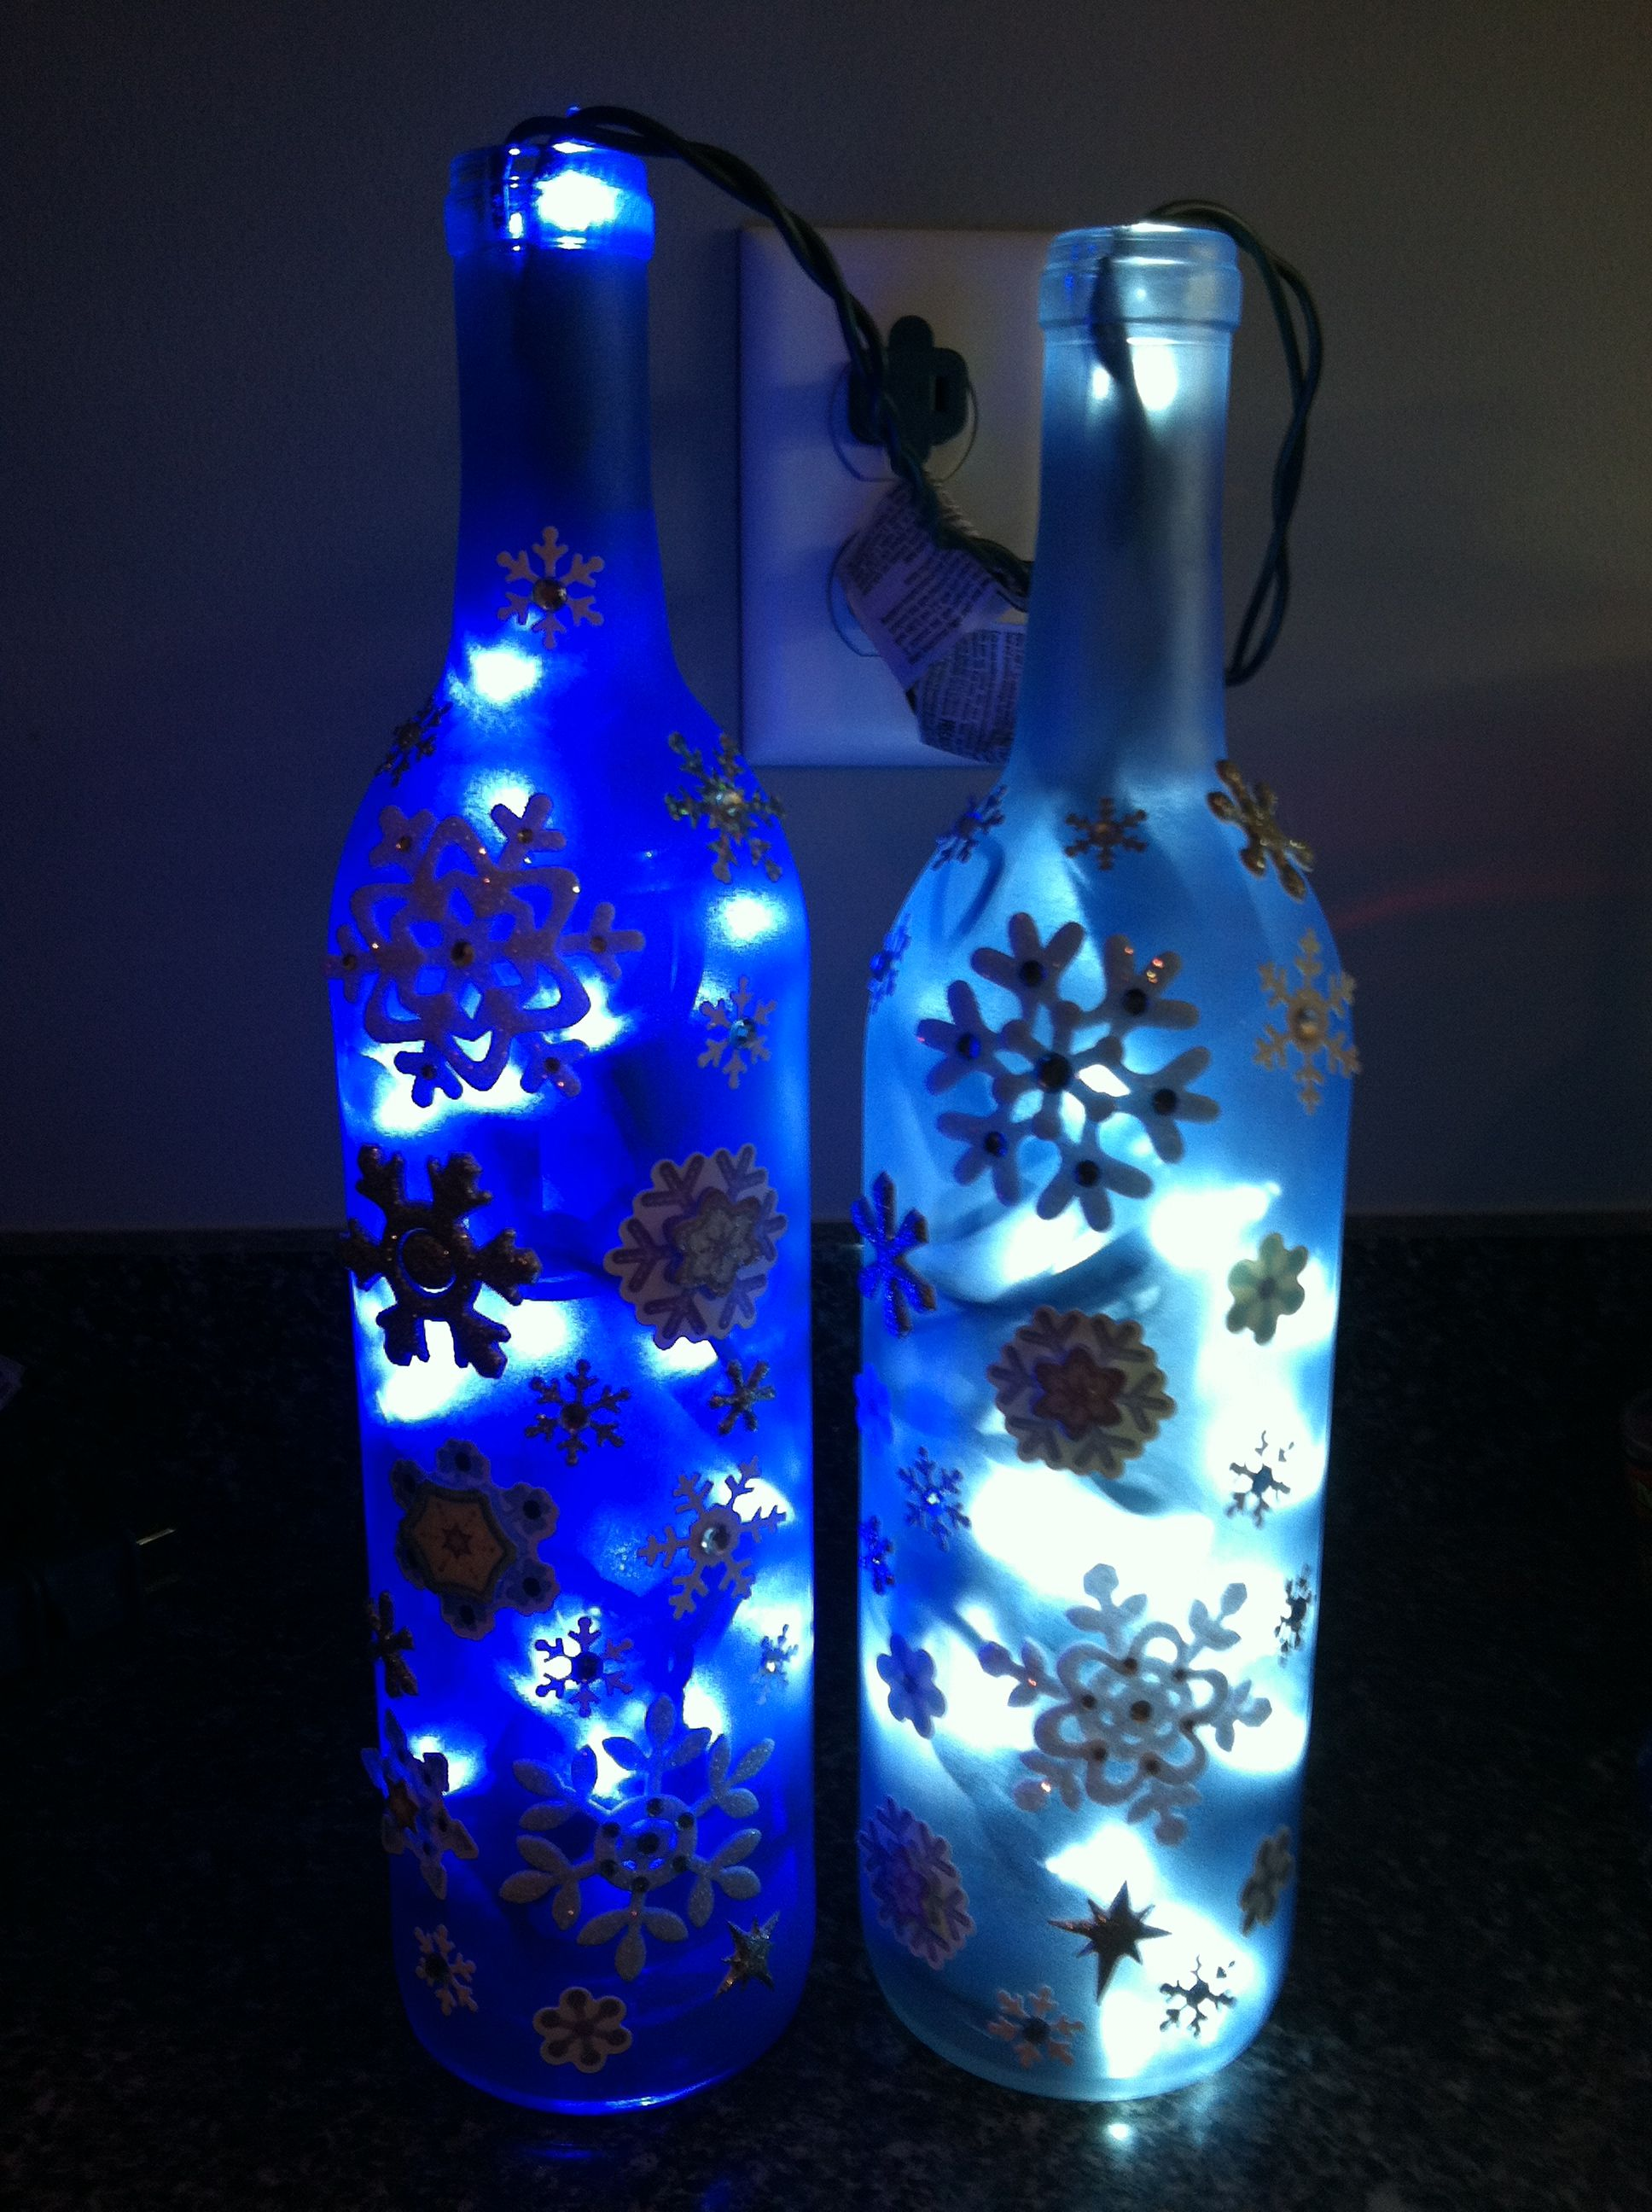 Decorated wine bottles | Wine bottle decor, Empty wine bottles